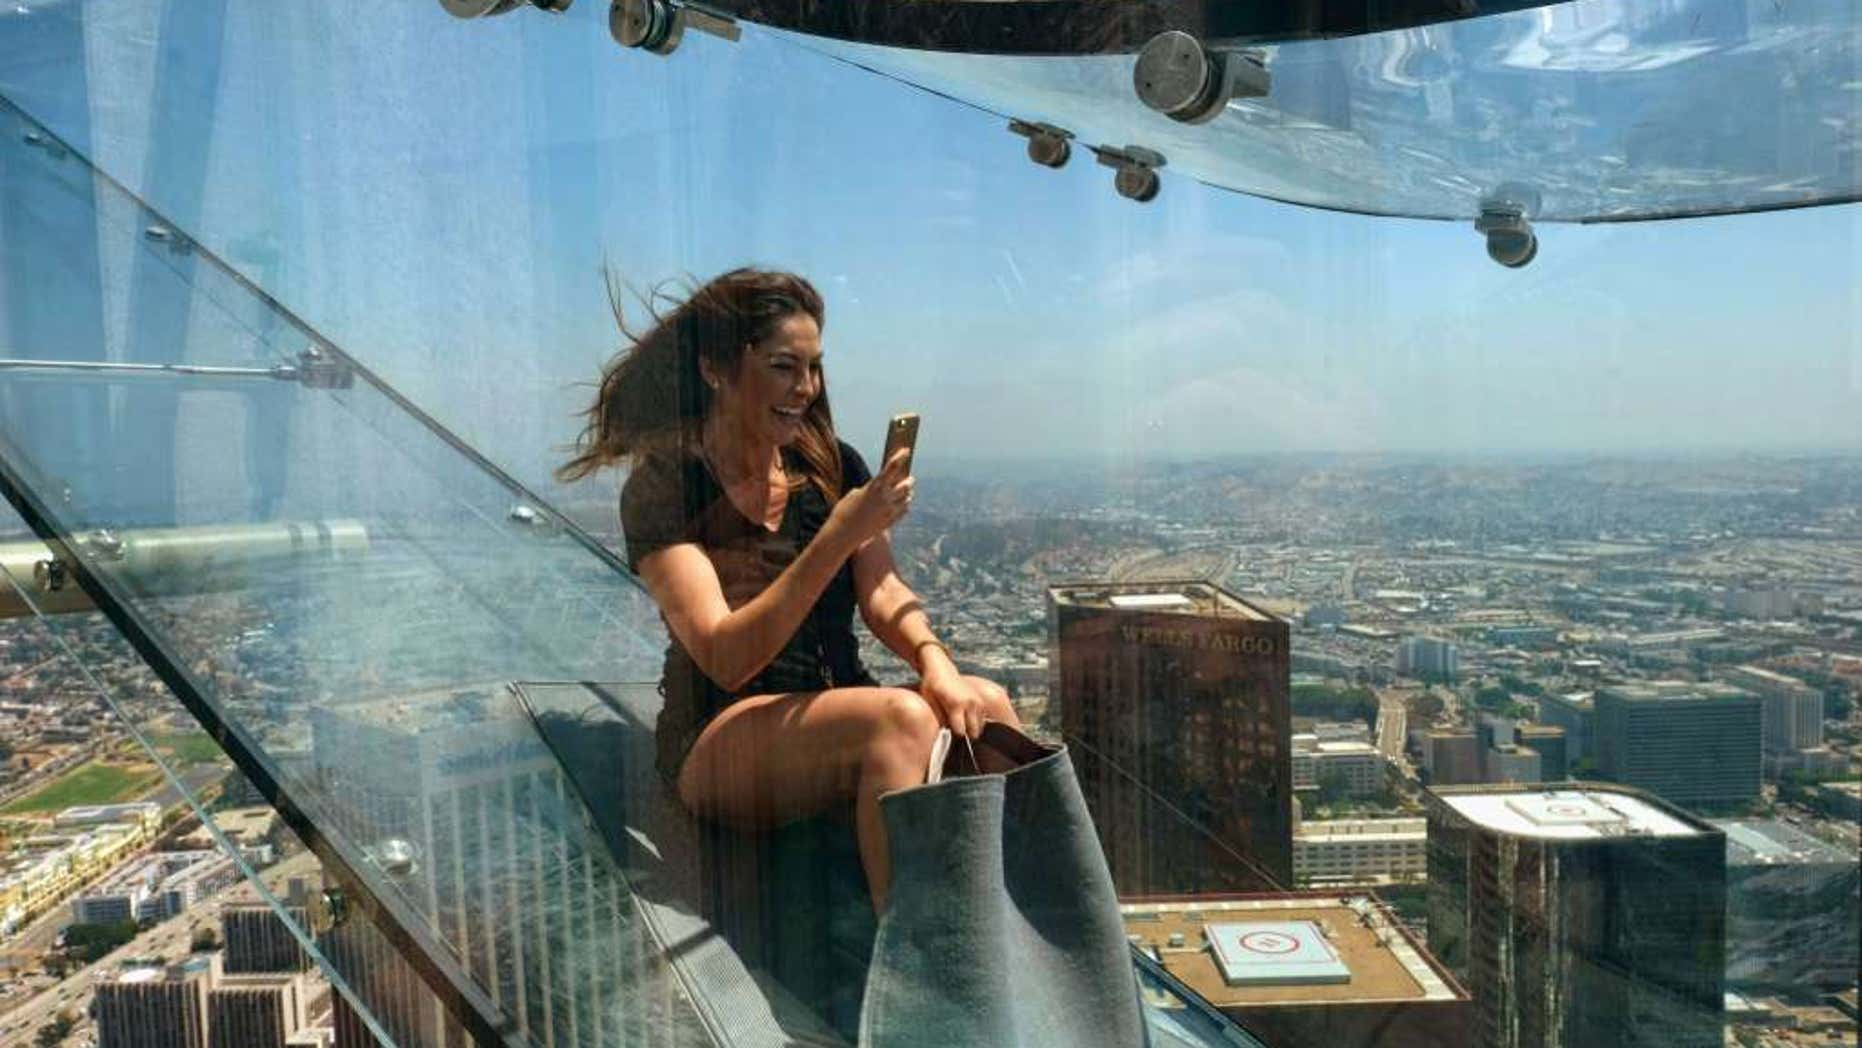 """Angela Cox a reporter with Seven Network Australia takes a photo with her phone as she takes ride down the U.S. Bank Tower building's 1,000 foot tall """"Skyslide"""" in downtown Los Angeles on Thursday, June 23, 2016."""